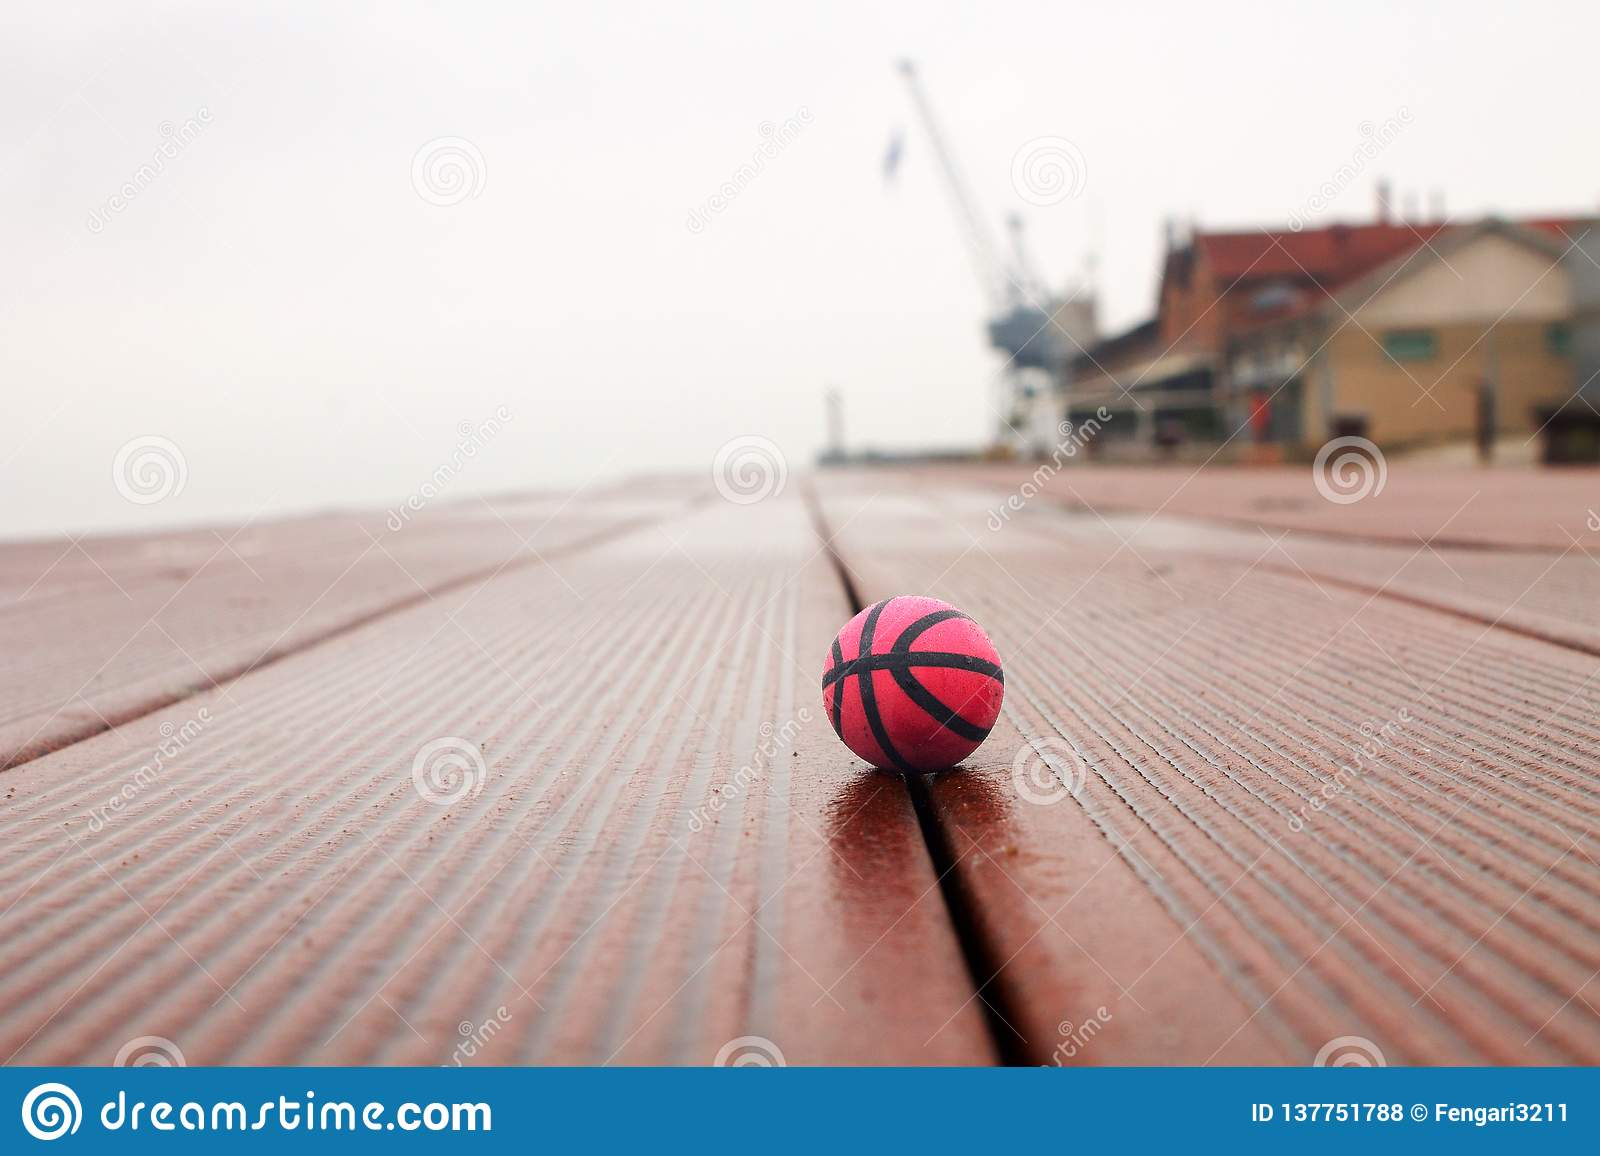 Basketball on the panels in the harbor